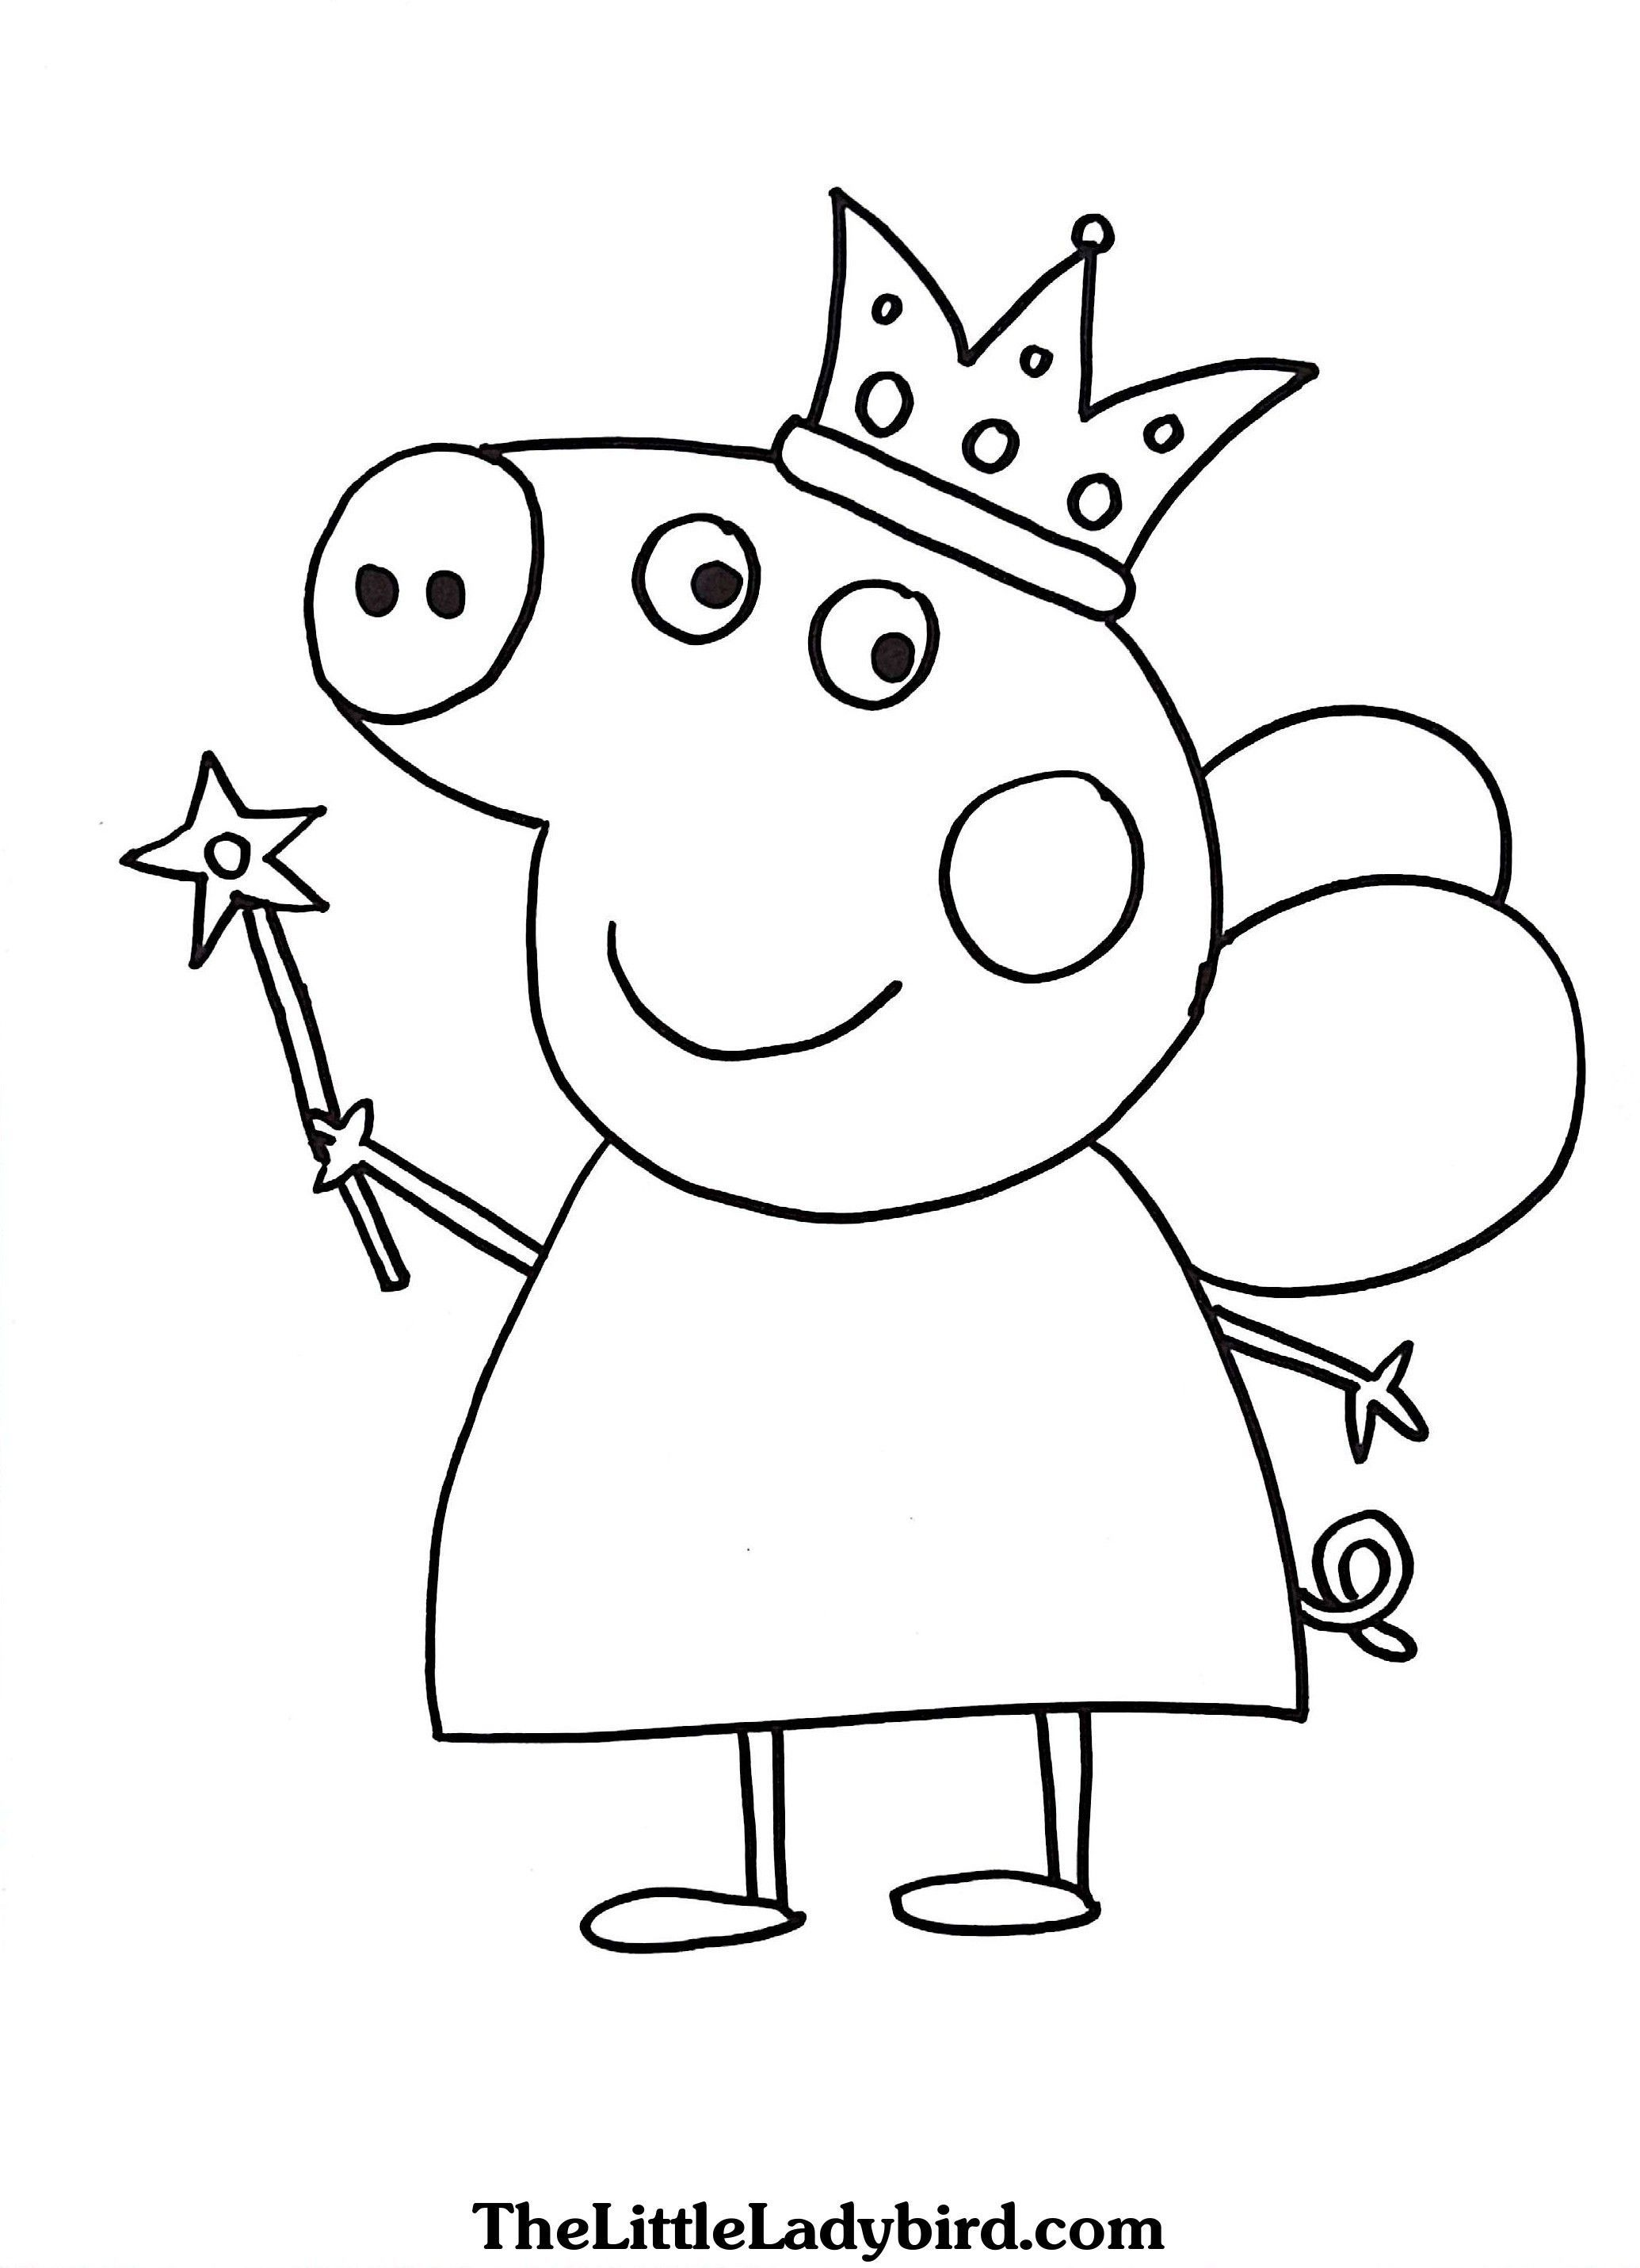 Peppa Pig Nose Printables Coloring Pages Allow Kids To Accompany Their Favorite Charact Peppa Pig Coloring Pages Peppa Pig Colouring Birthday Coloring Pages